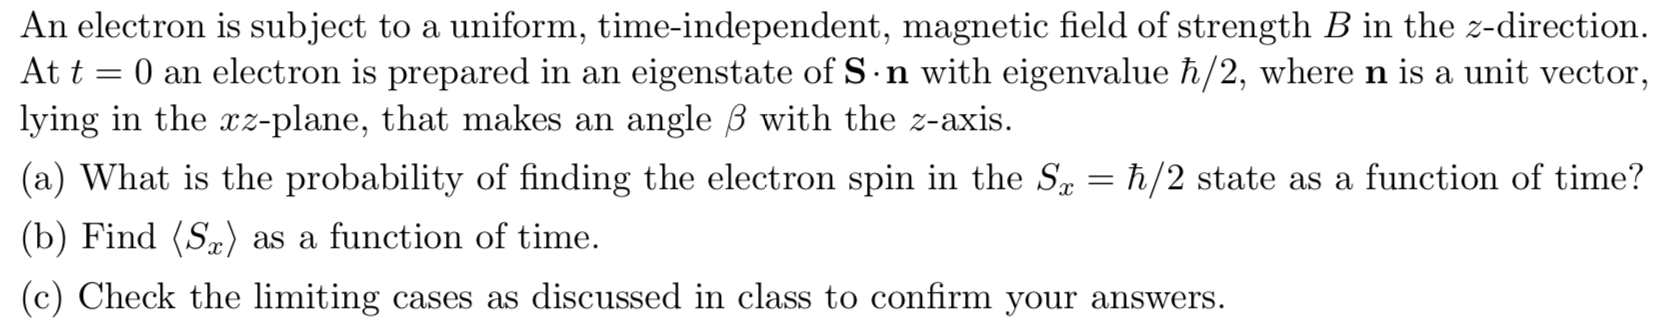 An electron is subject to a uniform, time-independent, magnetic field of strength B in the z-direction At t 0 an electron is prepared in an lying in the rz-plane, that makes an eigenstate of S n with eigenvalue h/2, wheren is a unit vector angle B with the z-axis. (a) What is the probability of finding the electron spin in the Sa = h/2 state as a function of time? (b) Find (Sa) as a function of time (c) Check the limiting cases as discussed in class to confirm your answers.